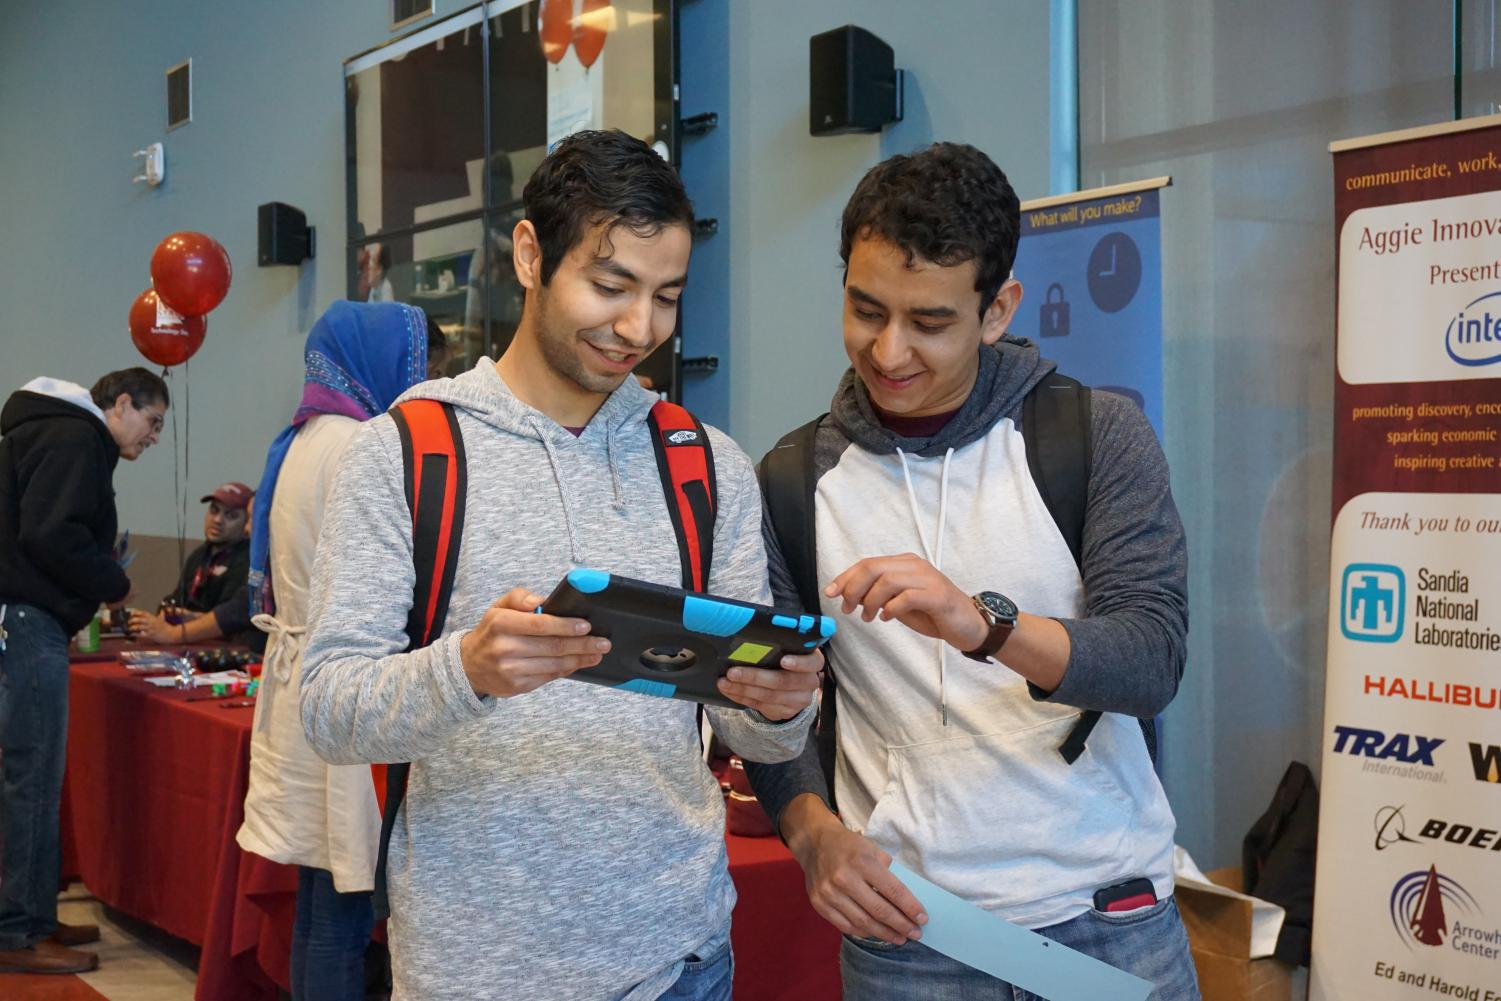 Students interact with new technology inside NMSU's Aggie Lounge on Tech Day.